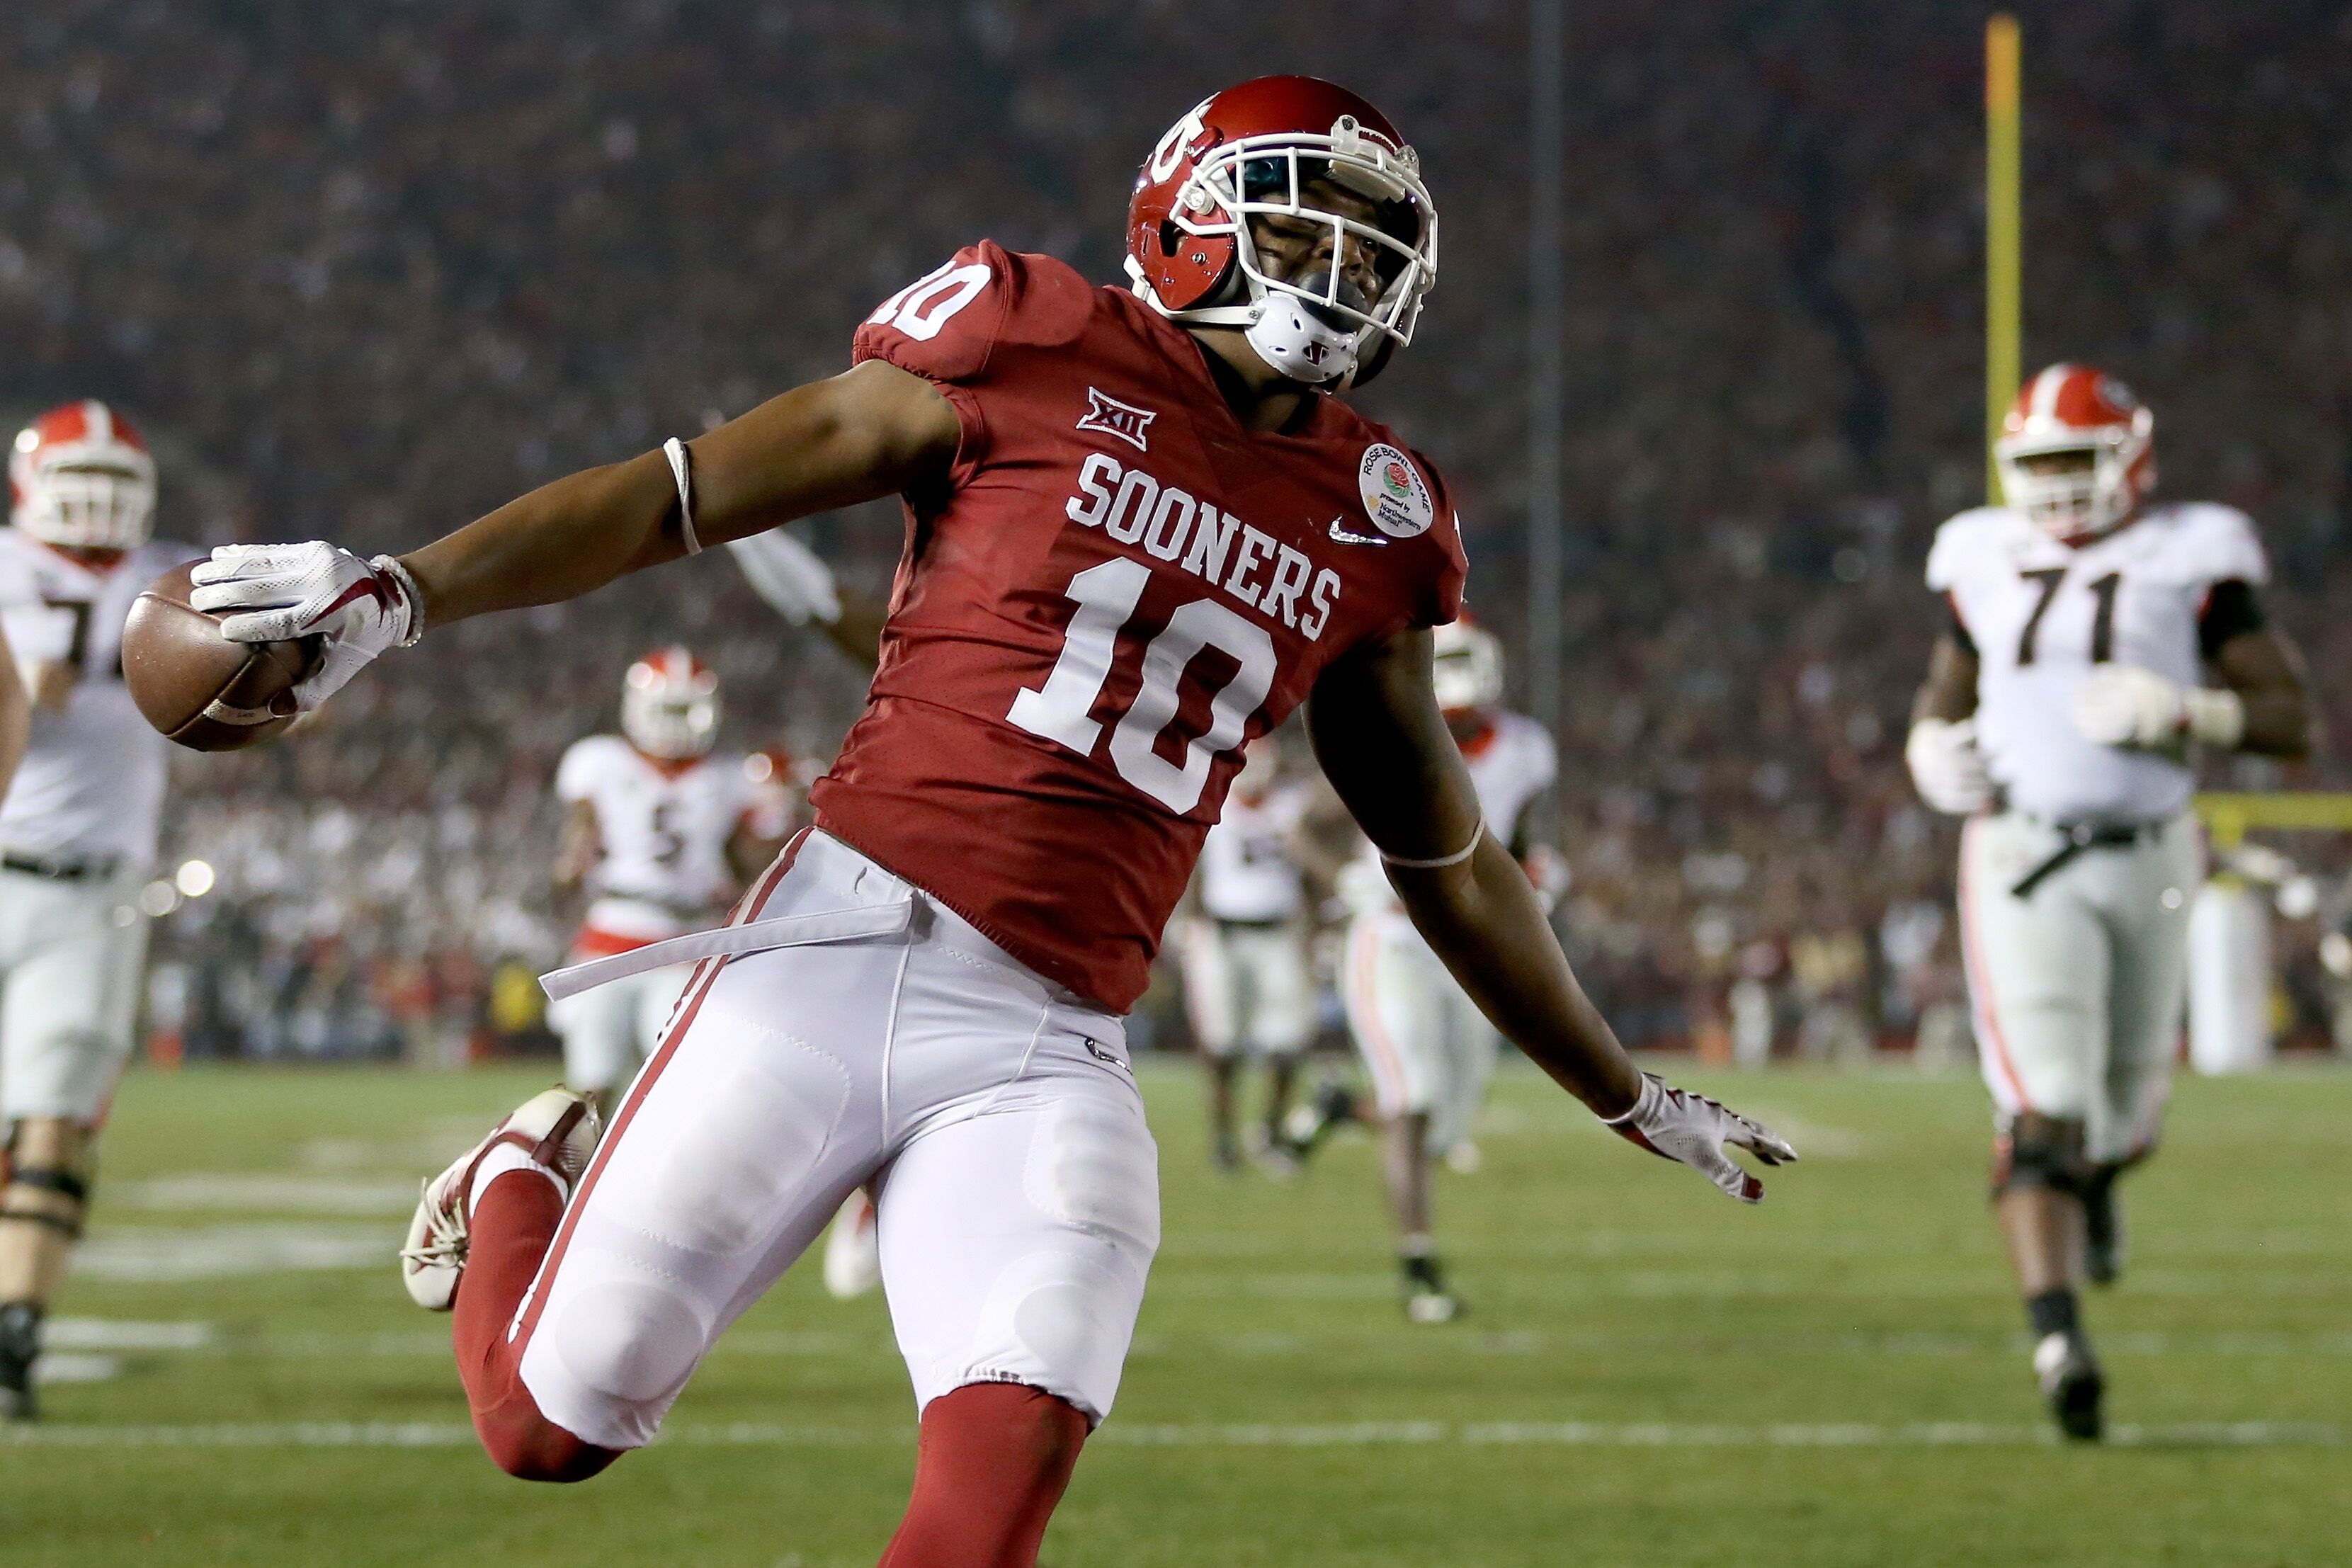 Buccaneers Oklahoma Sooners 2018 Draft Prospects To Watch